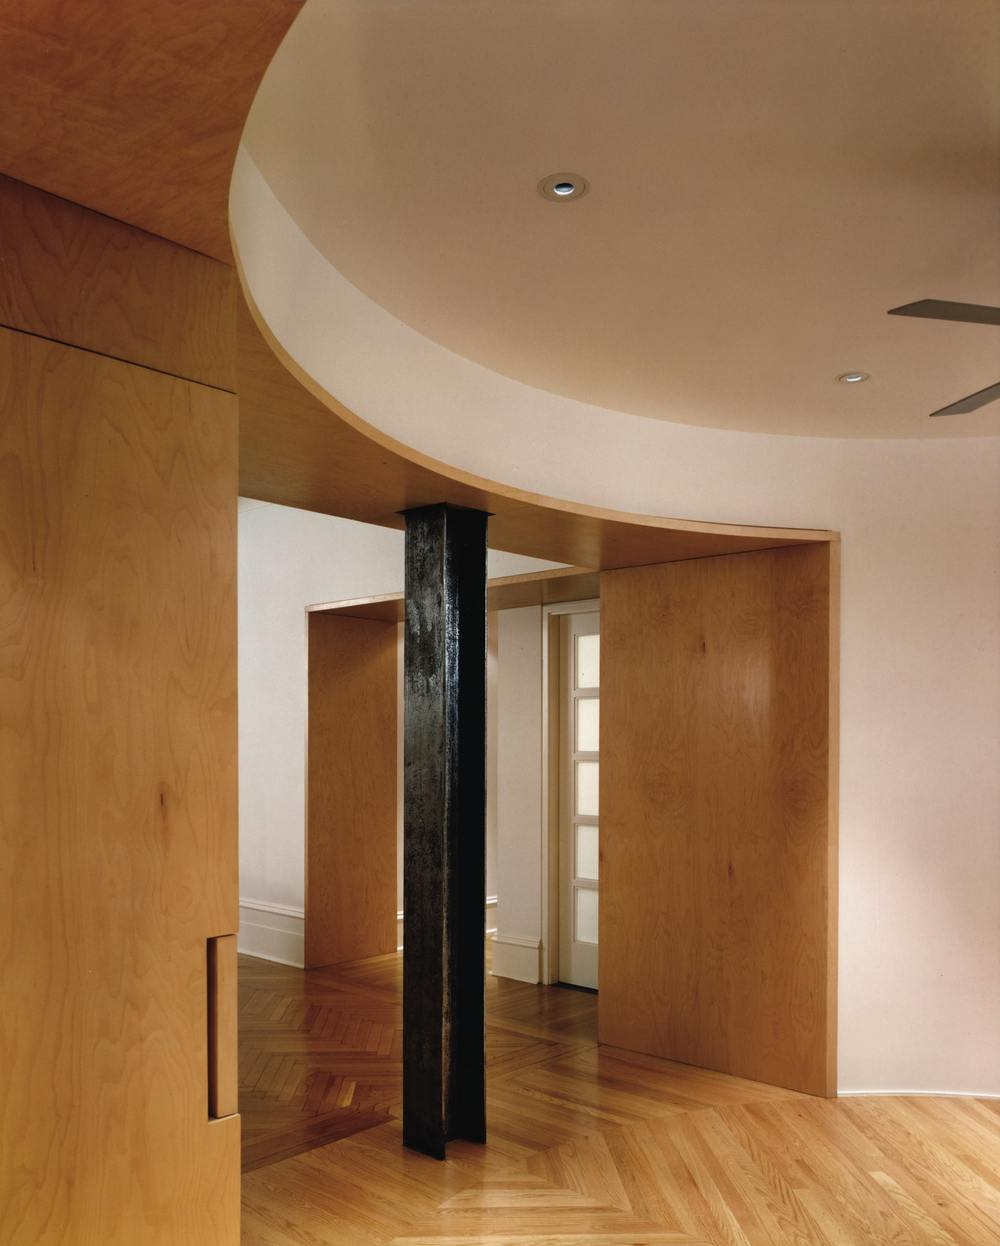 Modern Apartment Renovation | Upper East Side Manhattan New York City | Foyer Exposed Steel Column Curved Wood Portal Opening Wood Flooring | RES4